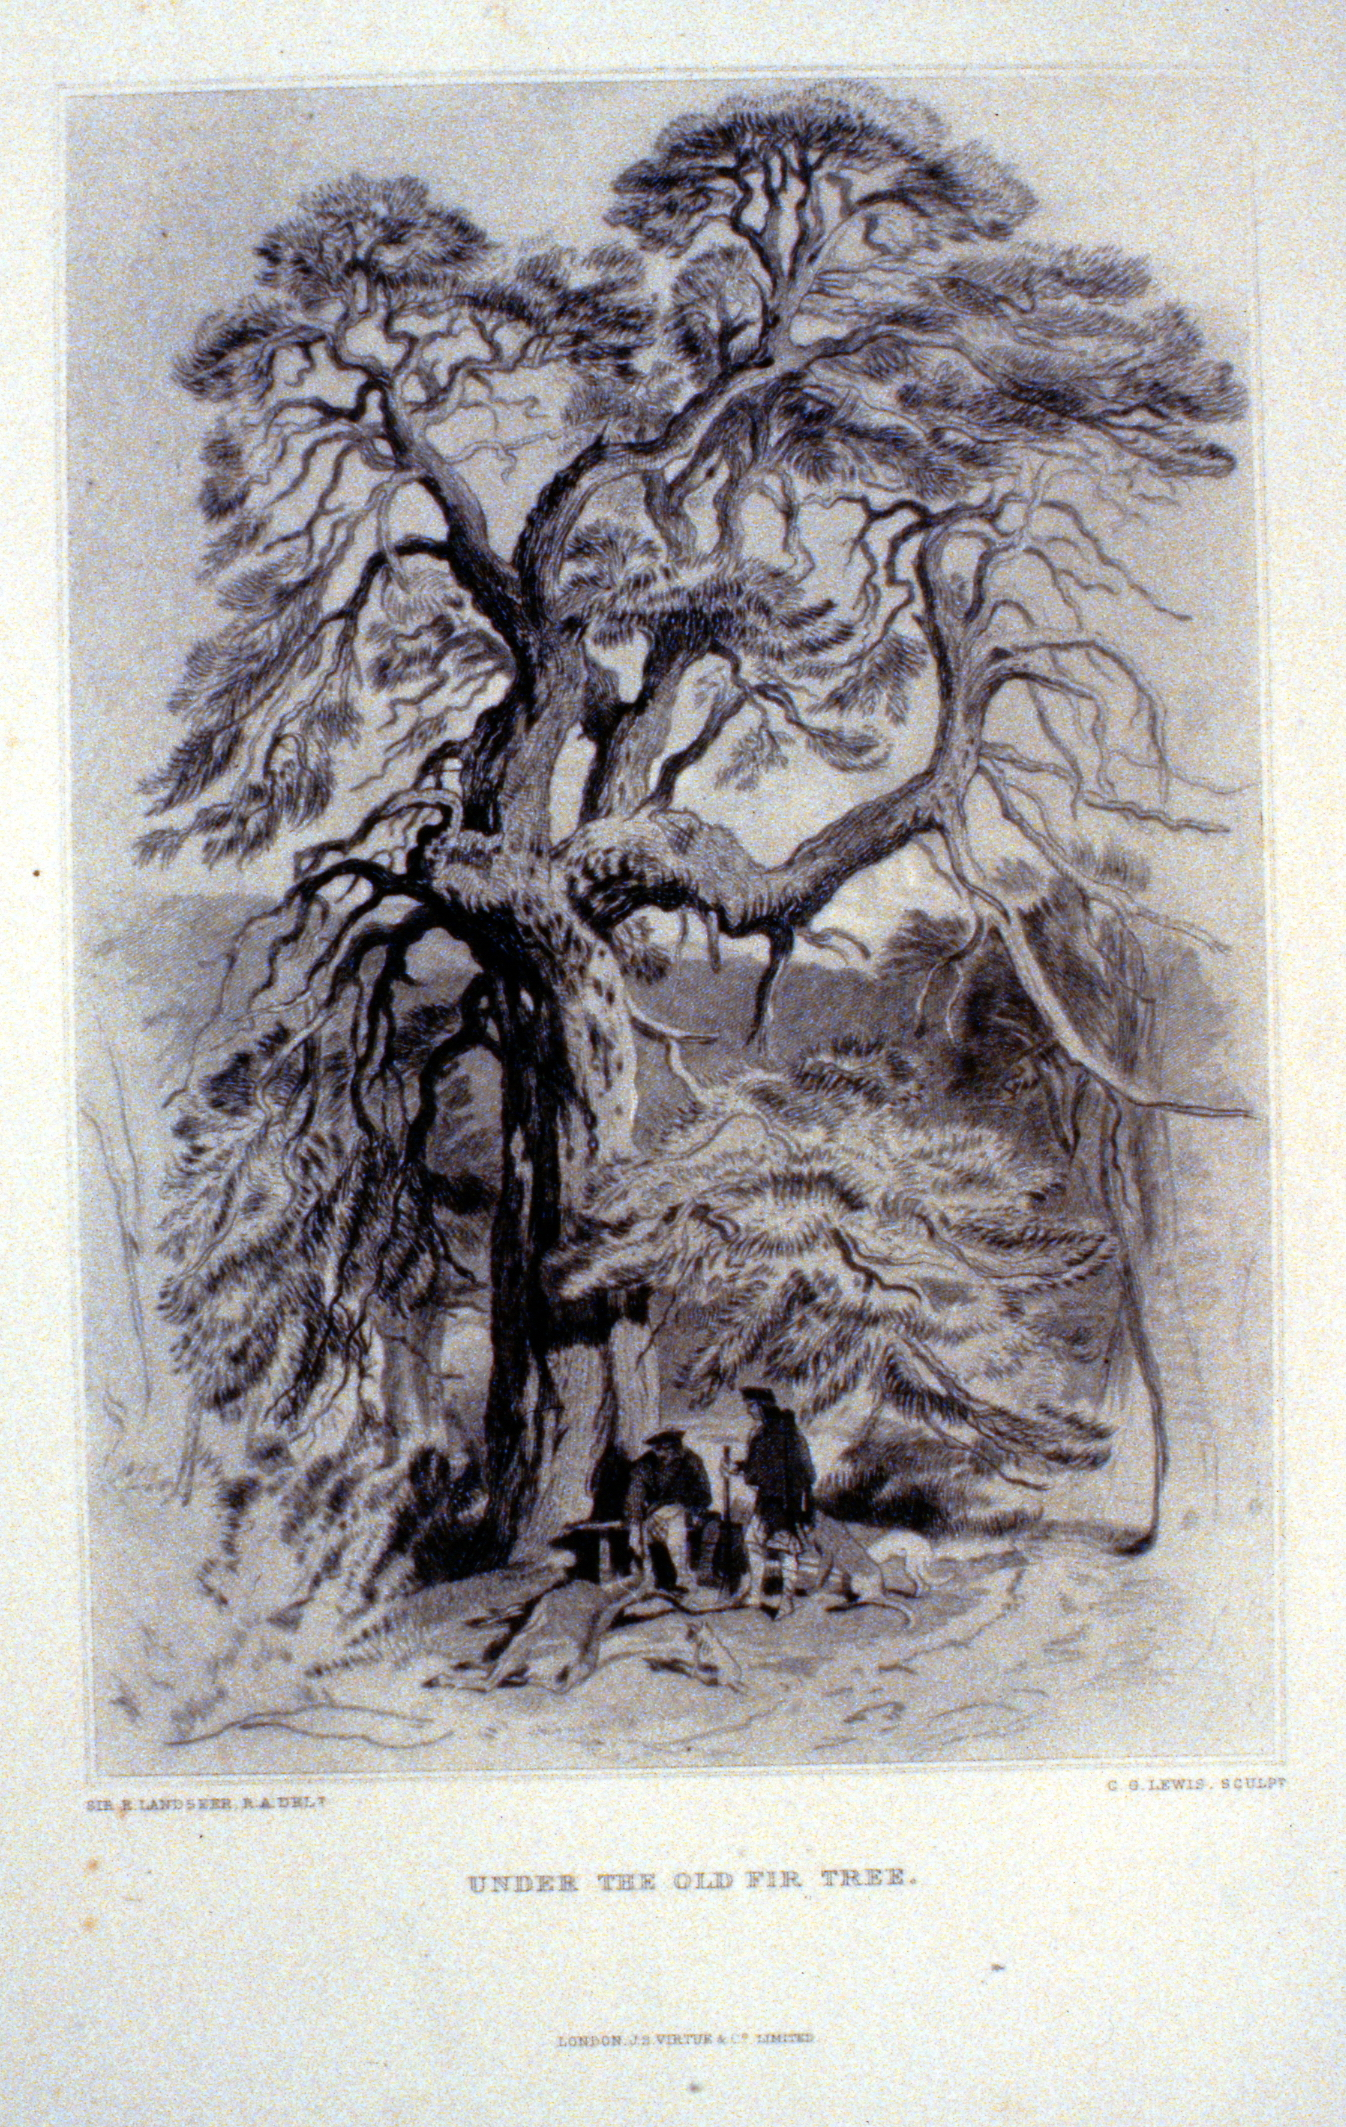 Under the Old Fir-Tree , c. late 19th Century, Charles G. Lewis, steel engraving, 25 cm x 18 cm, 1996.08.15, gift of Yvonne Adams